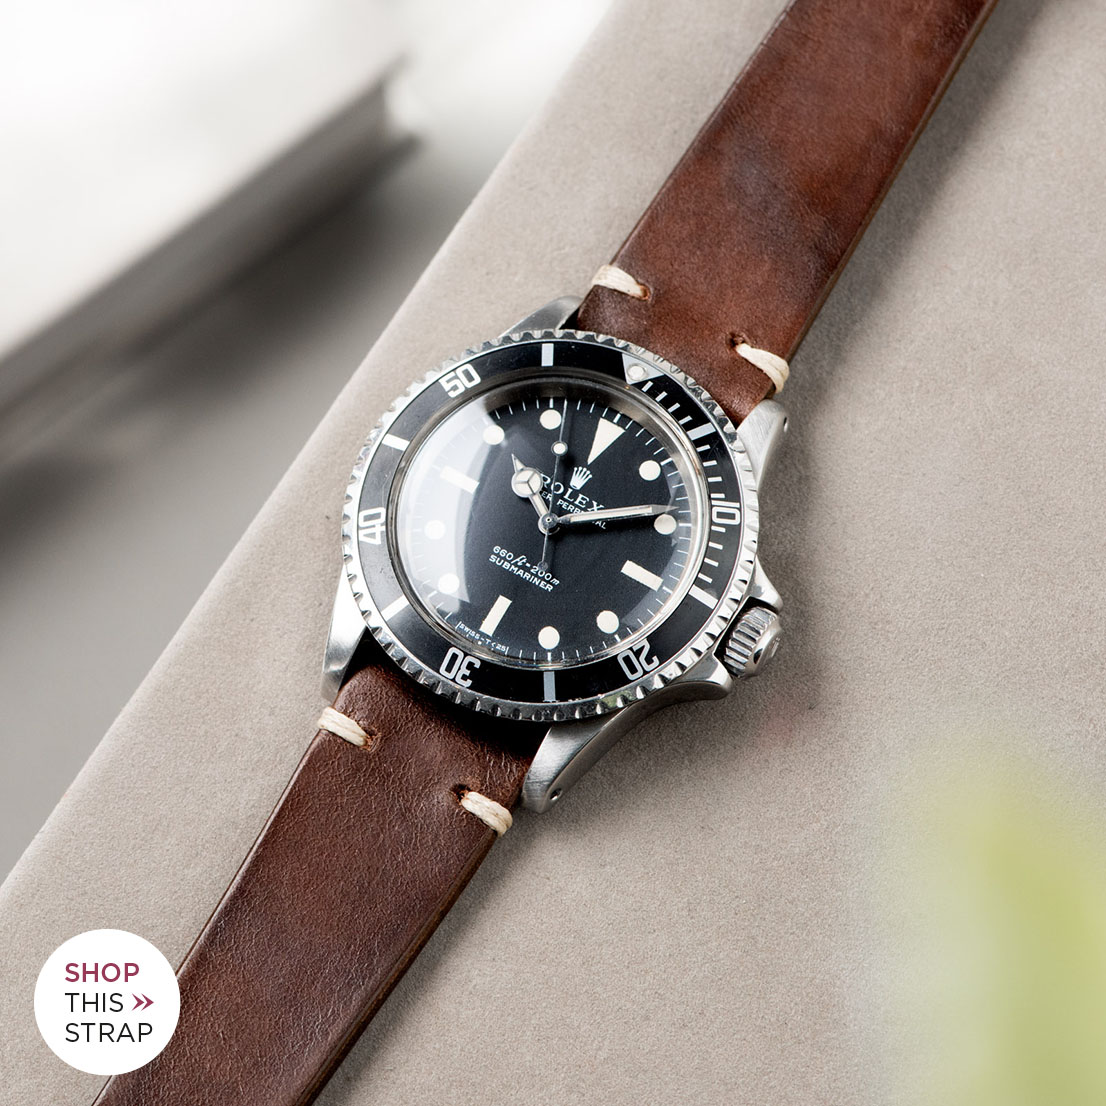 Bulang and Sons_Strap Guide_Rolex 5513 Submariner_LUMBERJACK BROWN LEATHER WATCH STRAP